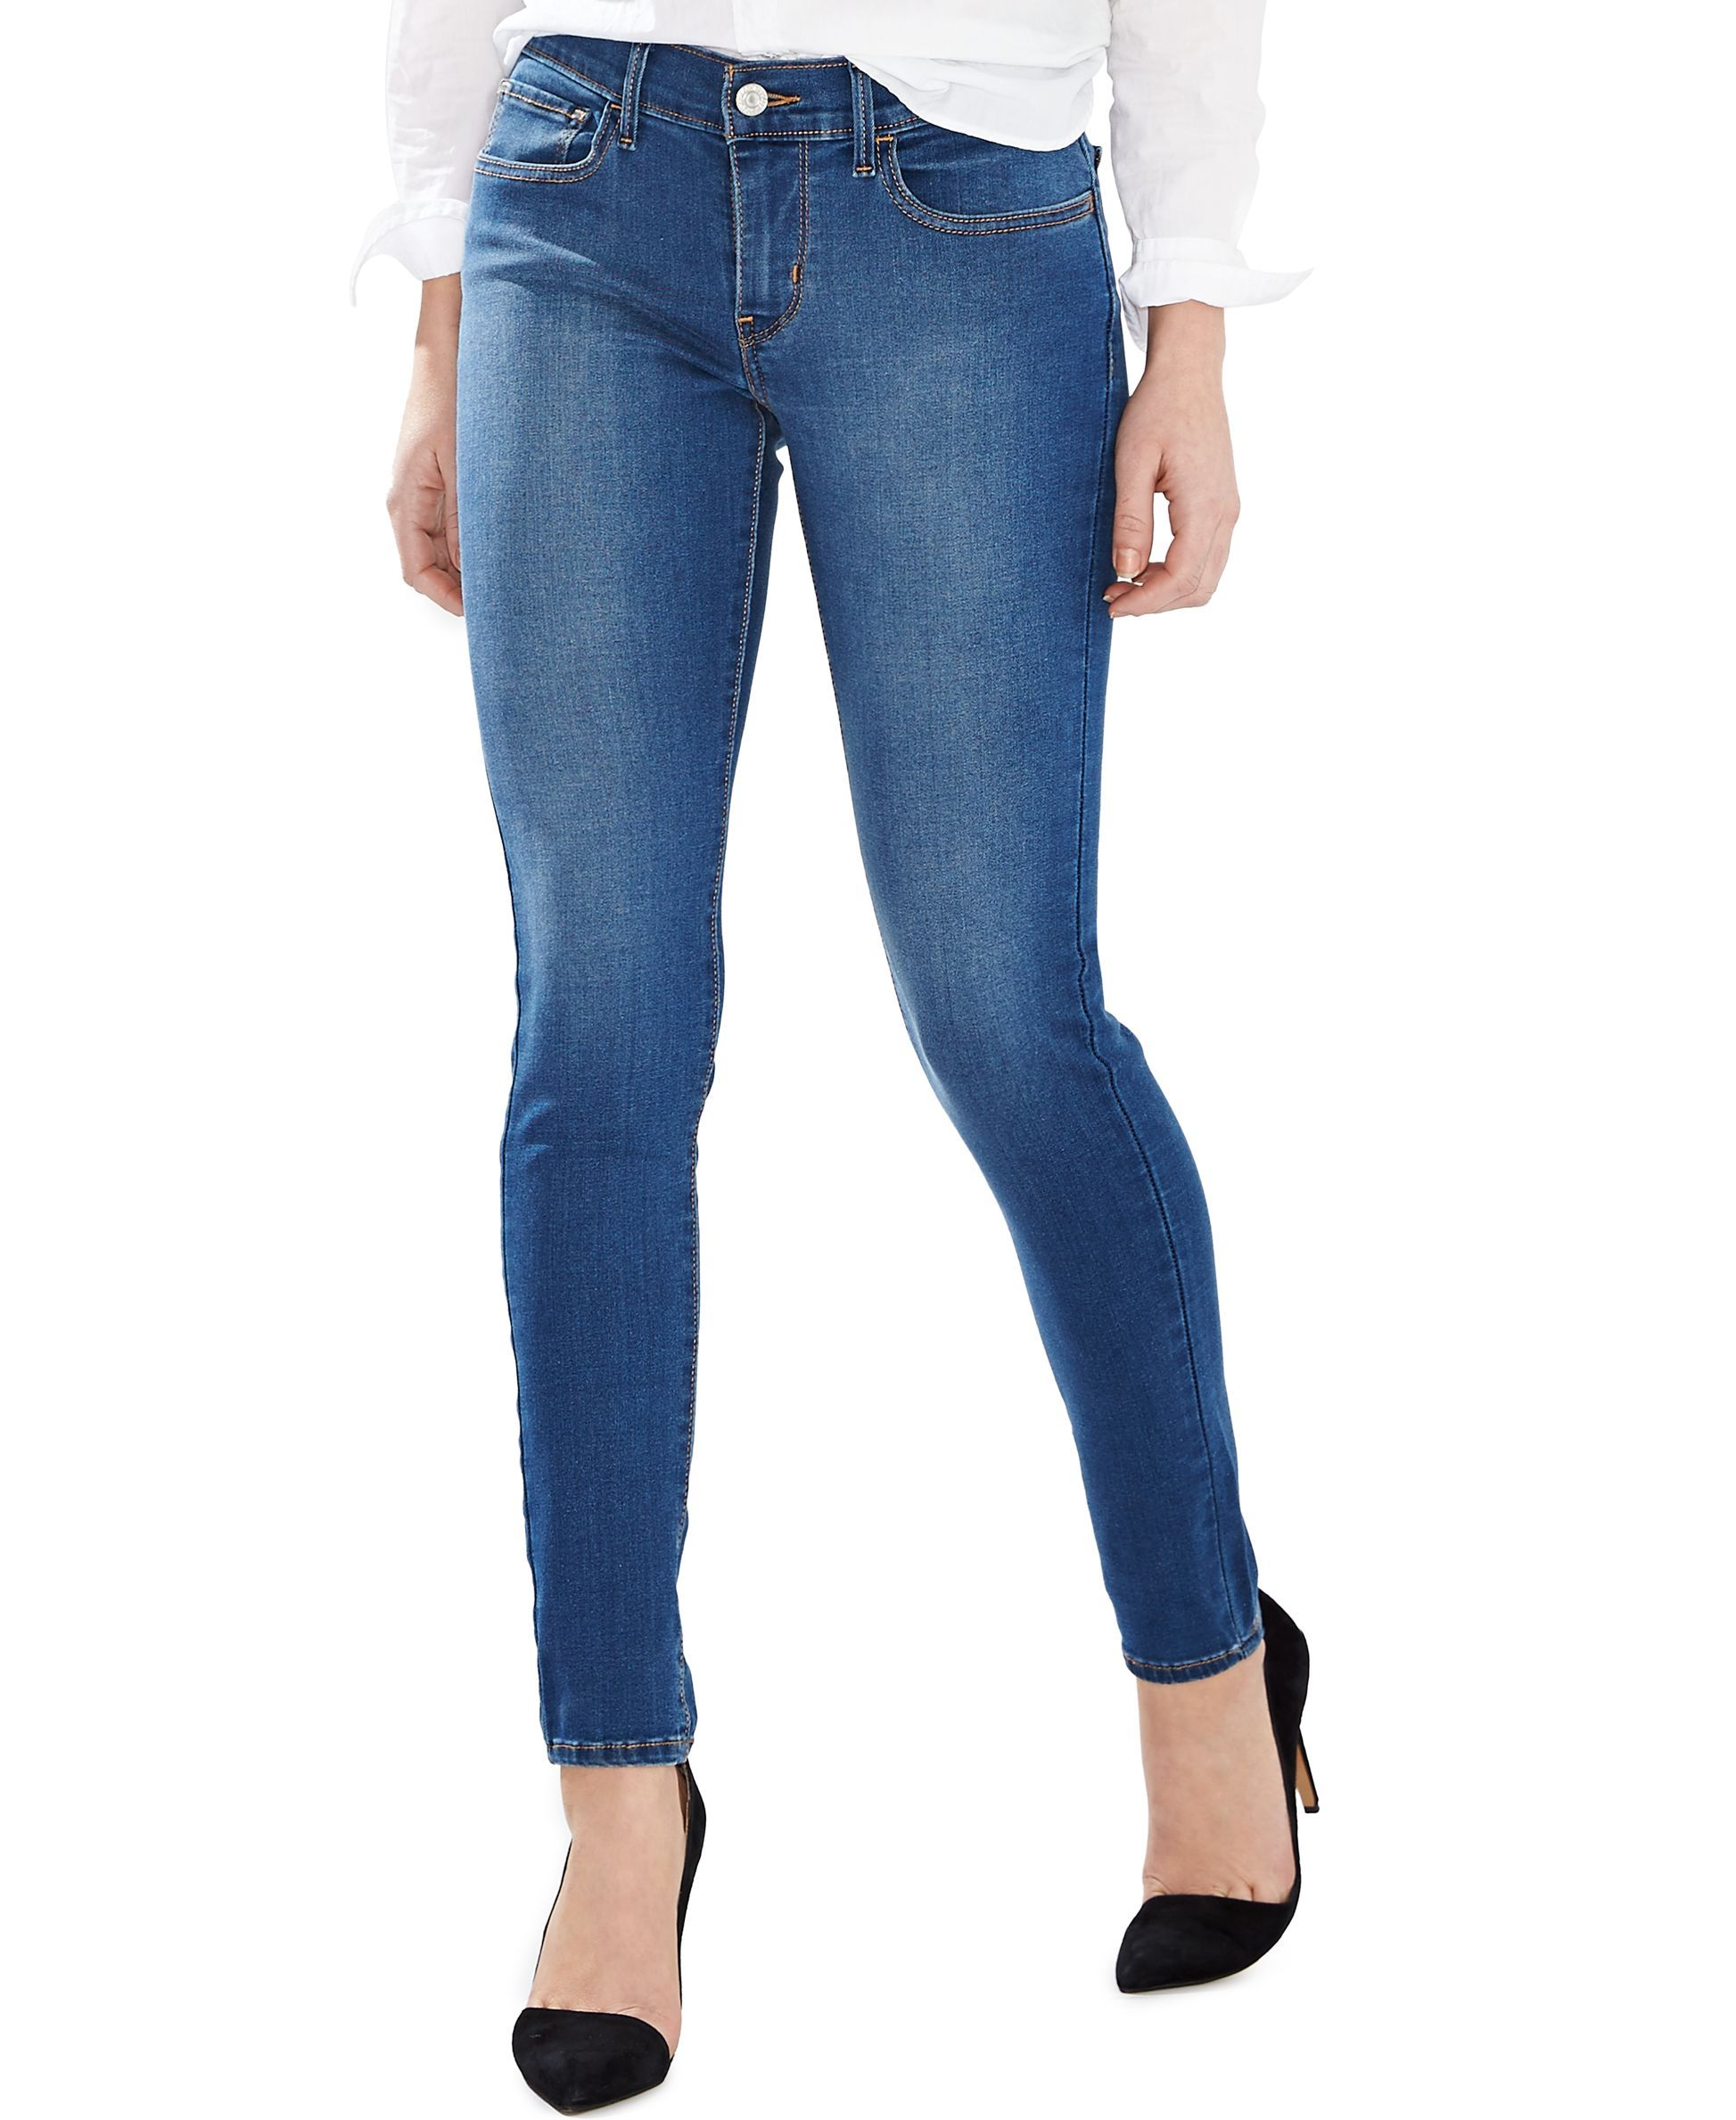 Levi&39s 710 Super Skinny Jeans Best Days Wash  Products